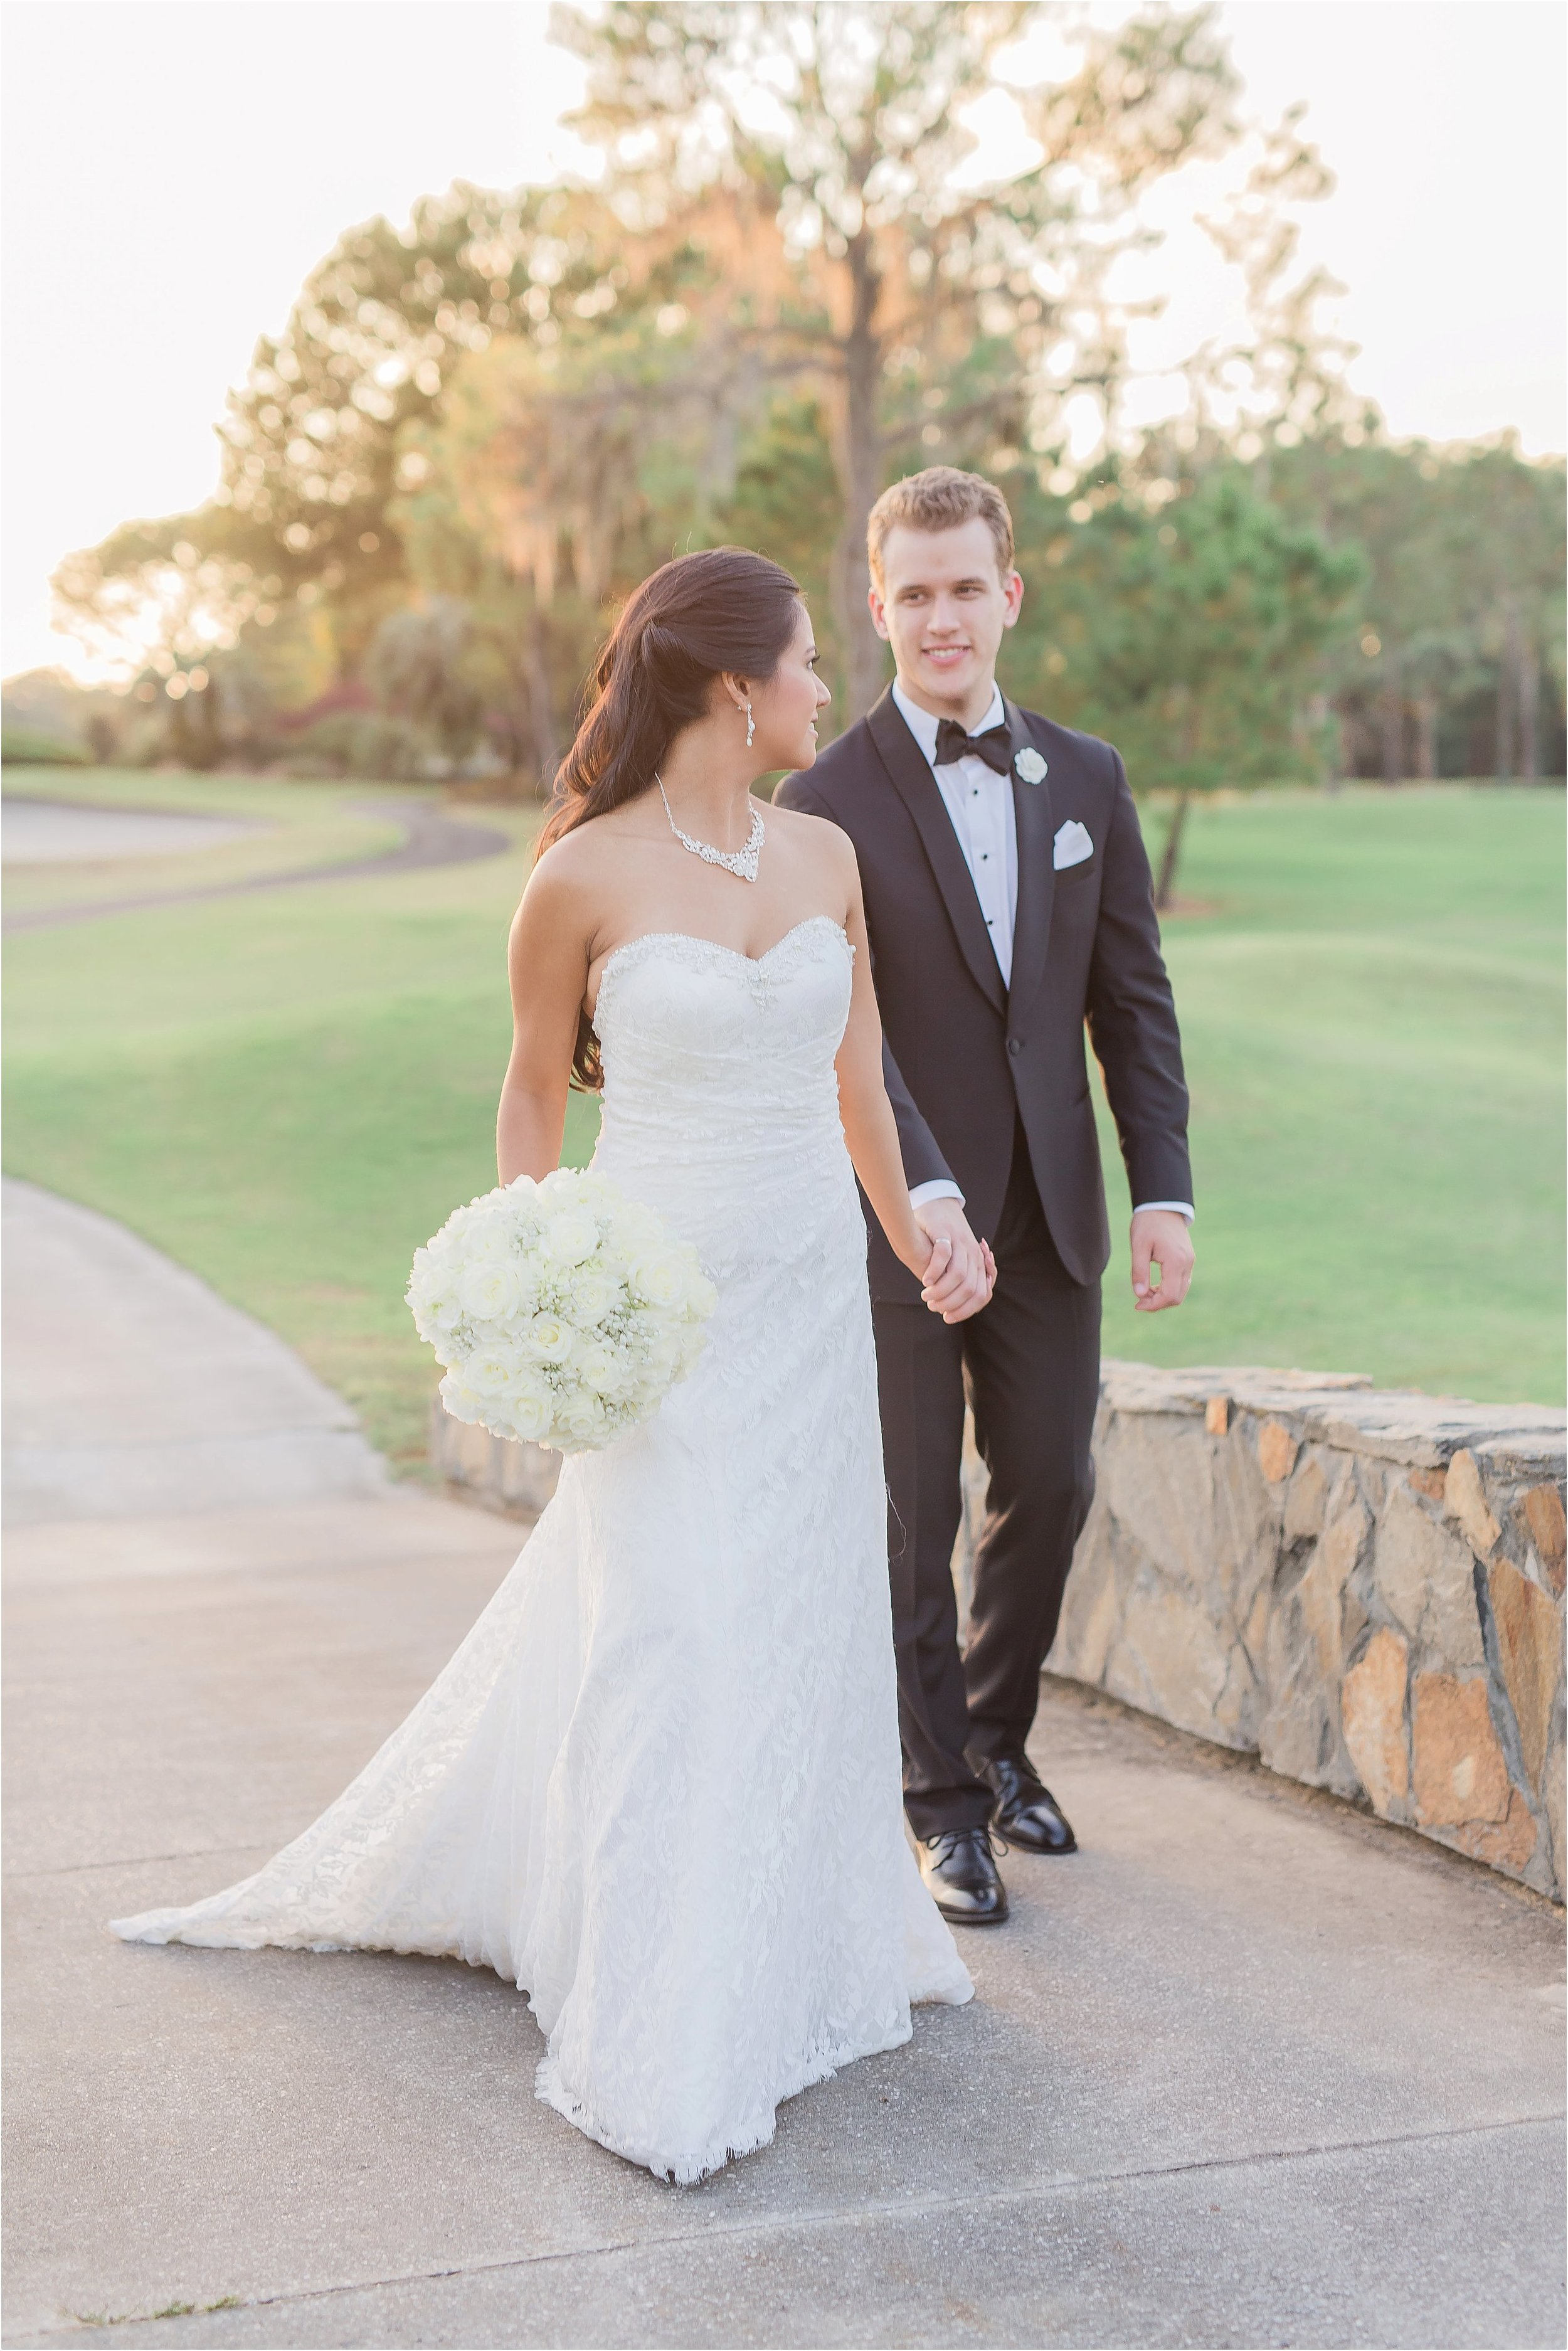 Romantic bride and groom portraits on the bridges at Mission Inn Country Club